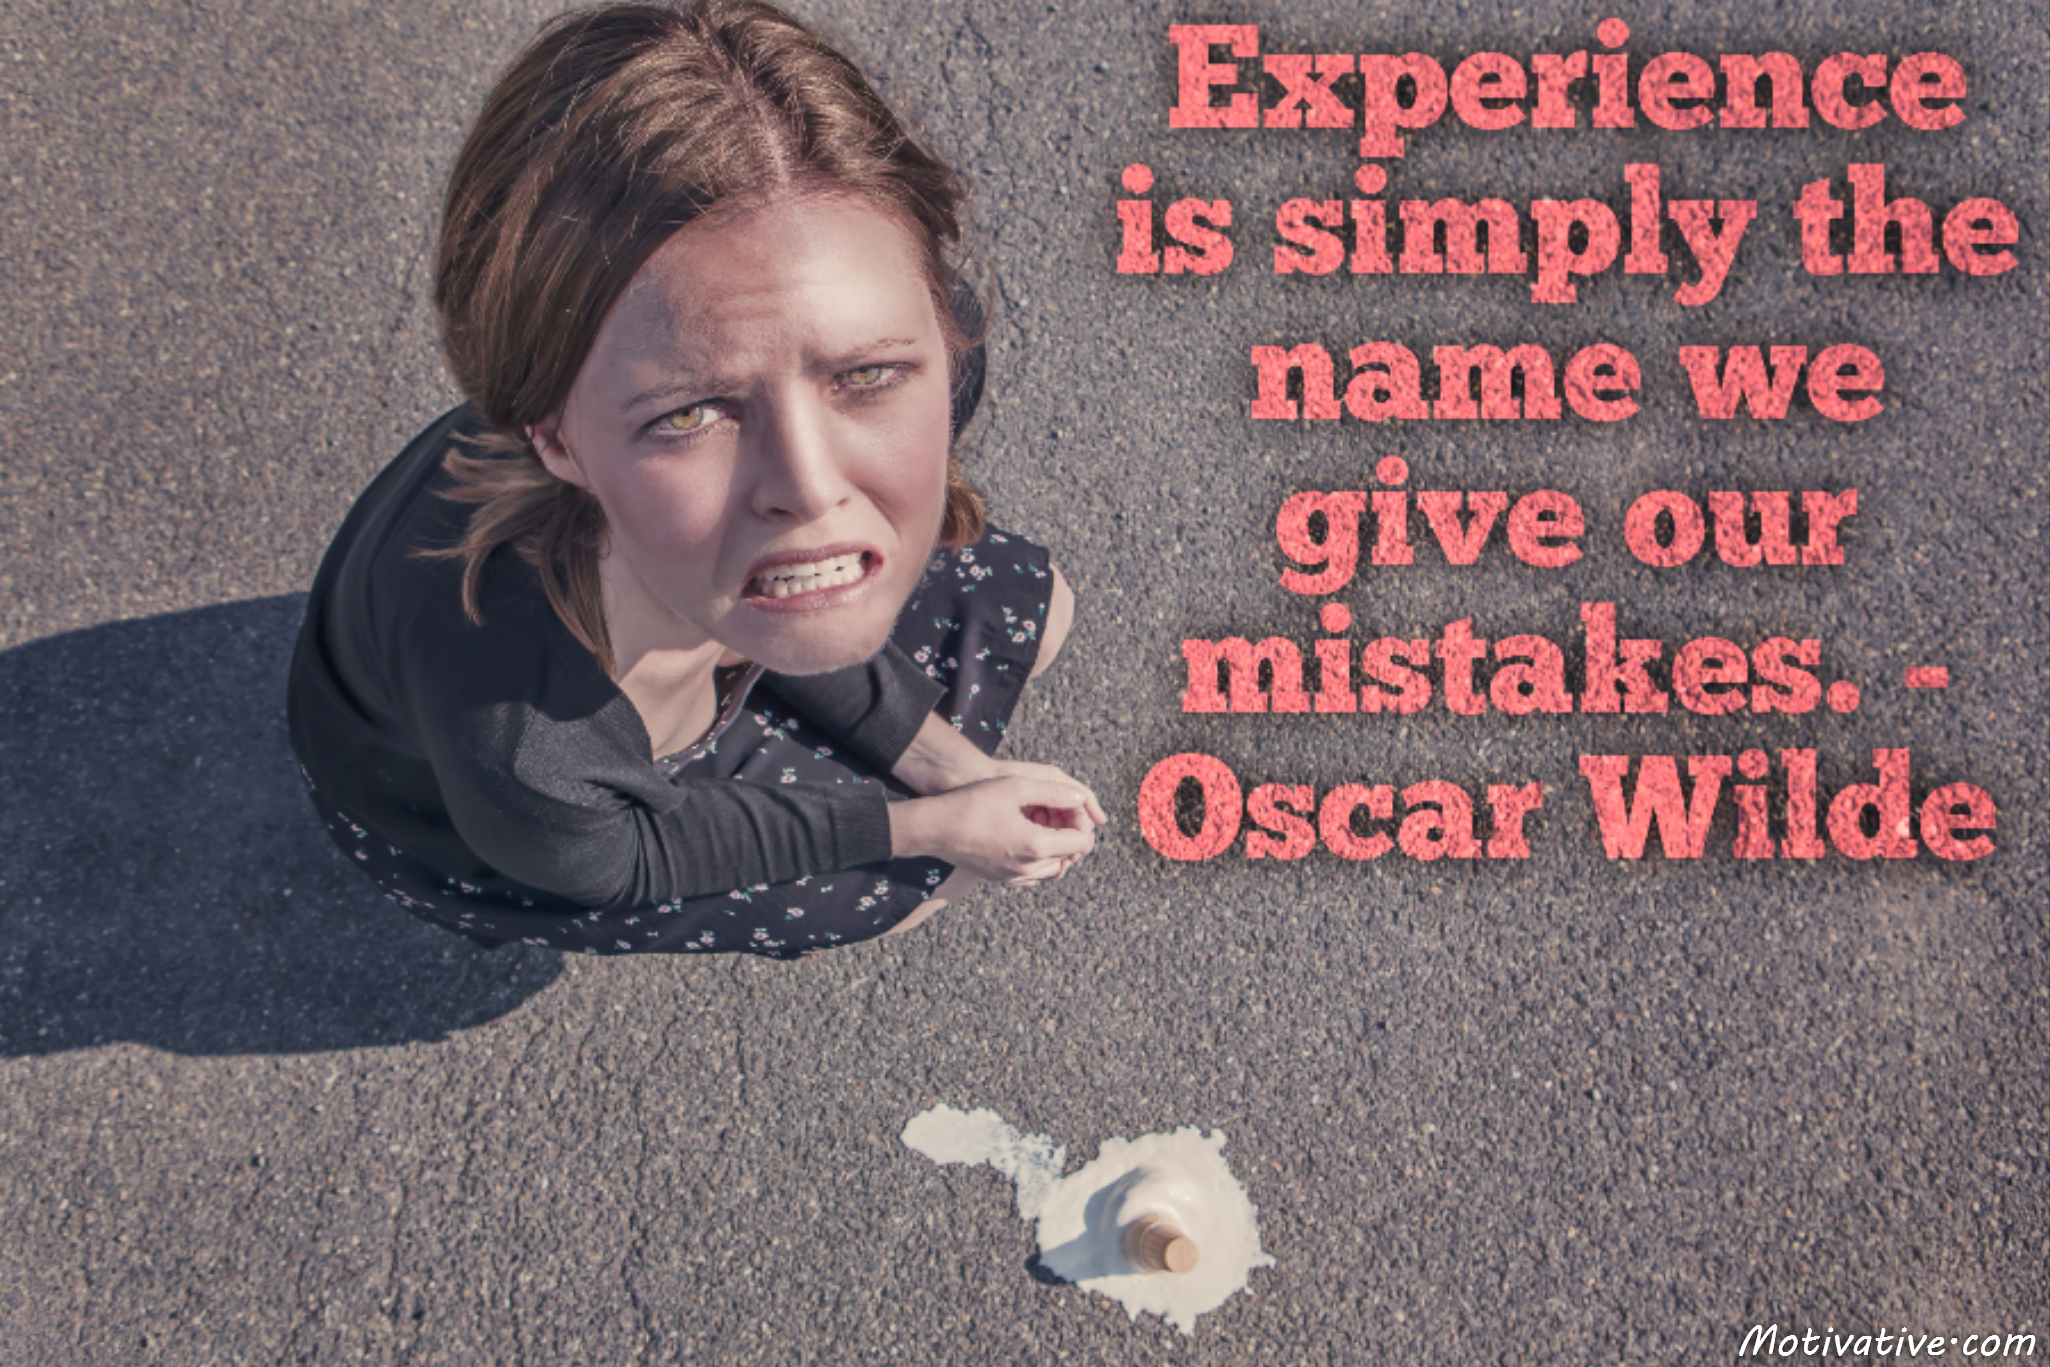 Experience is simply the name we give our mistakes. – Oscar Wilde